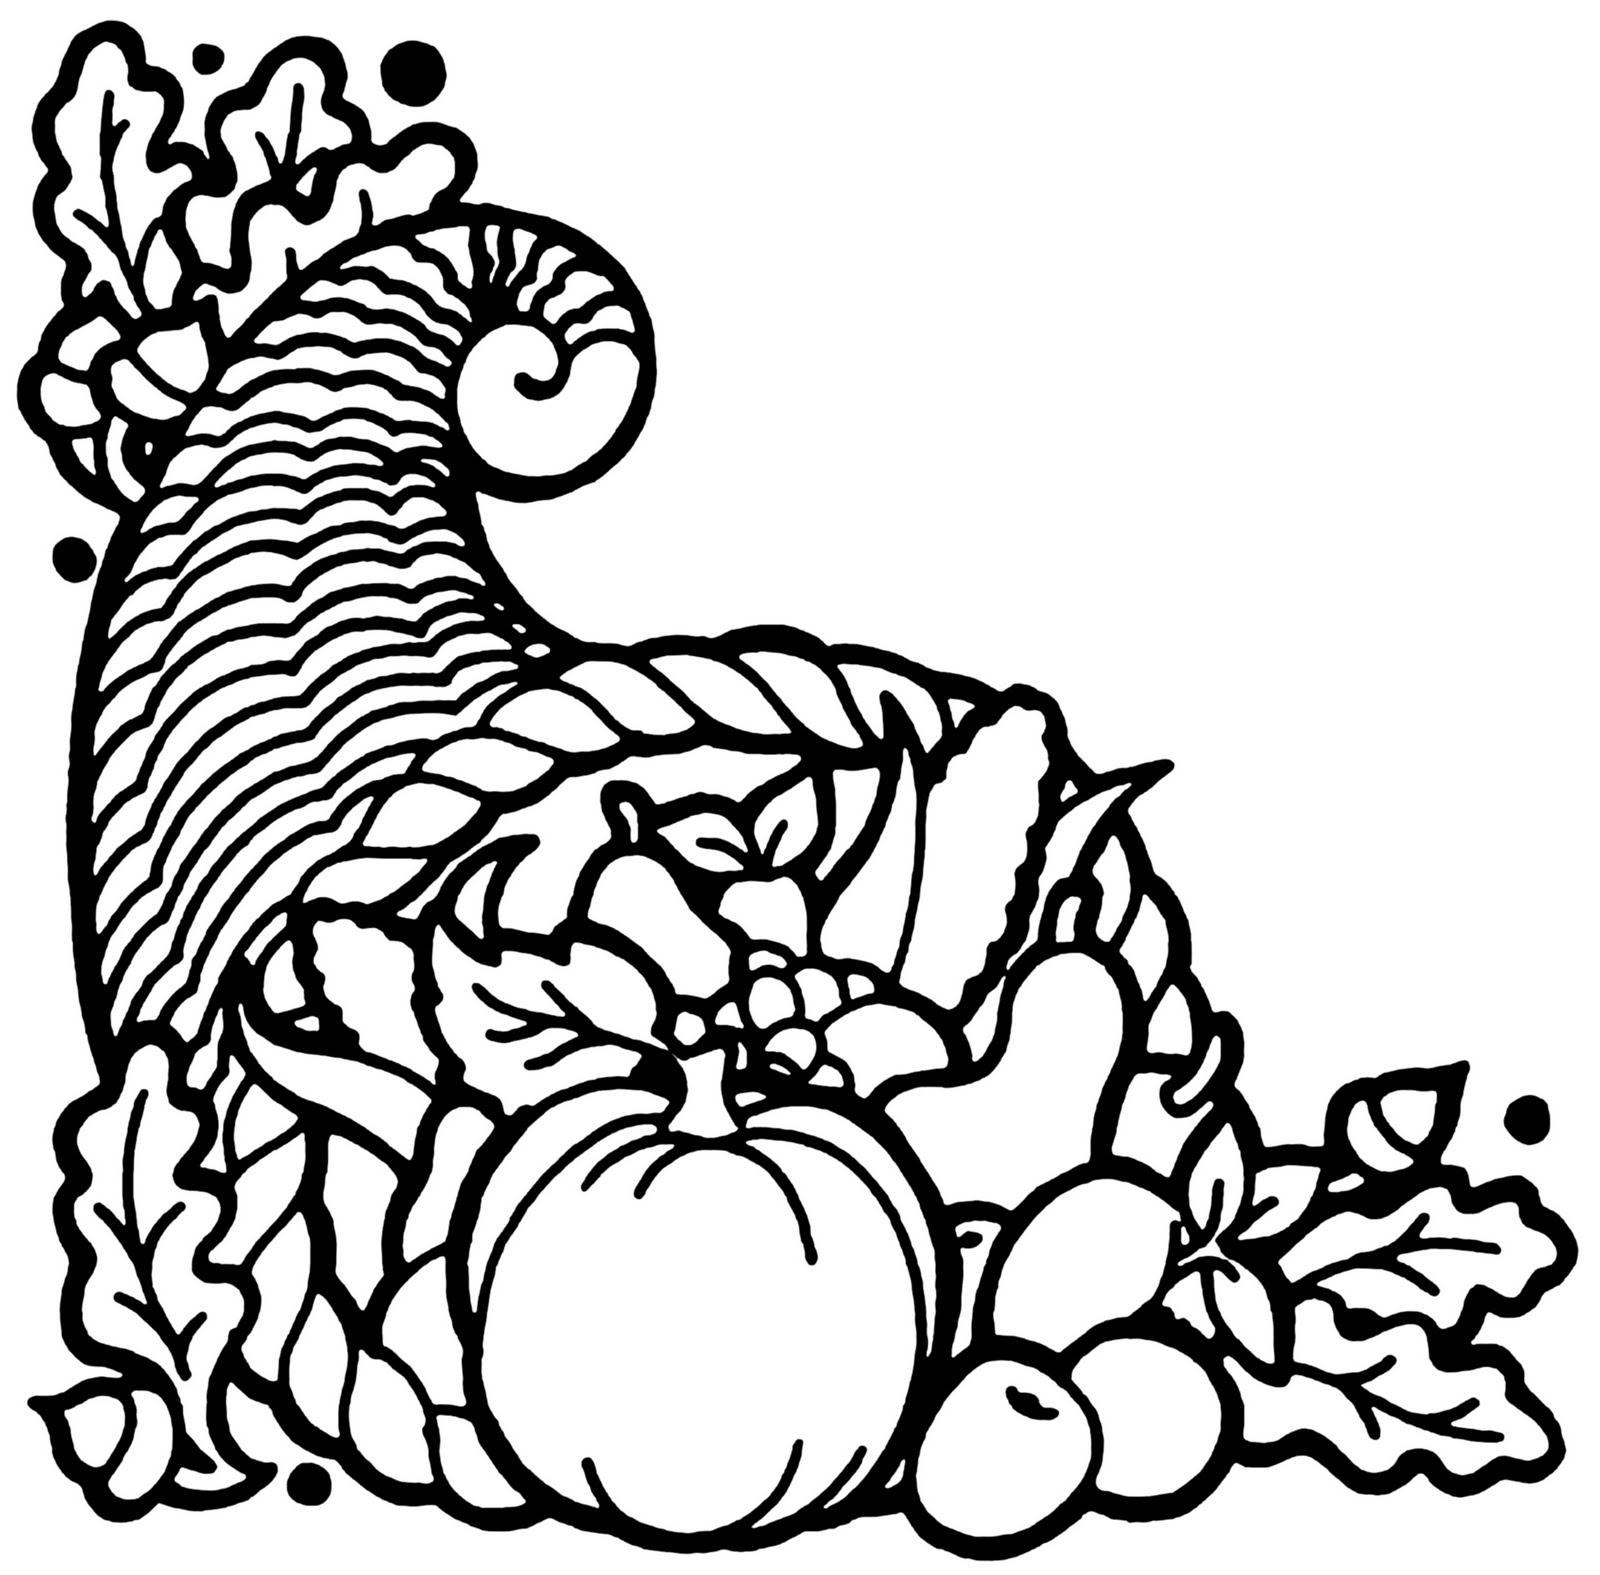 turkey and cornucopia coloring pages | Turkey Eve Meal on Metcalf: The Thanksgiving Cornucopia